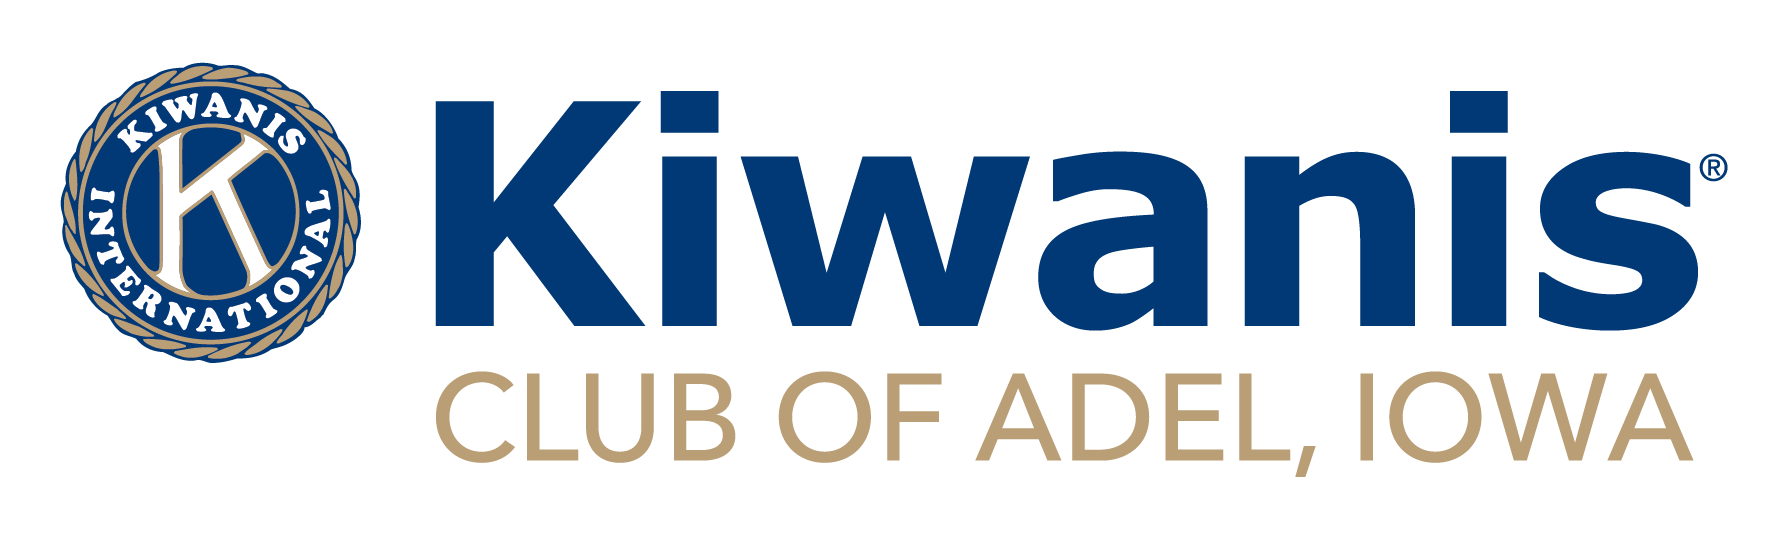 Kiwanis Club of Adel, Iowa